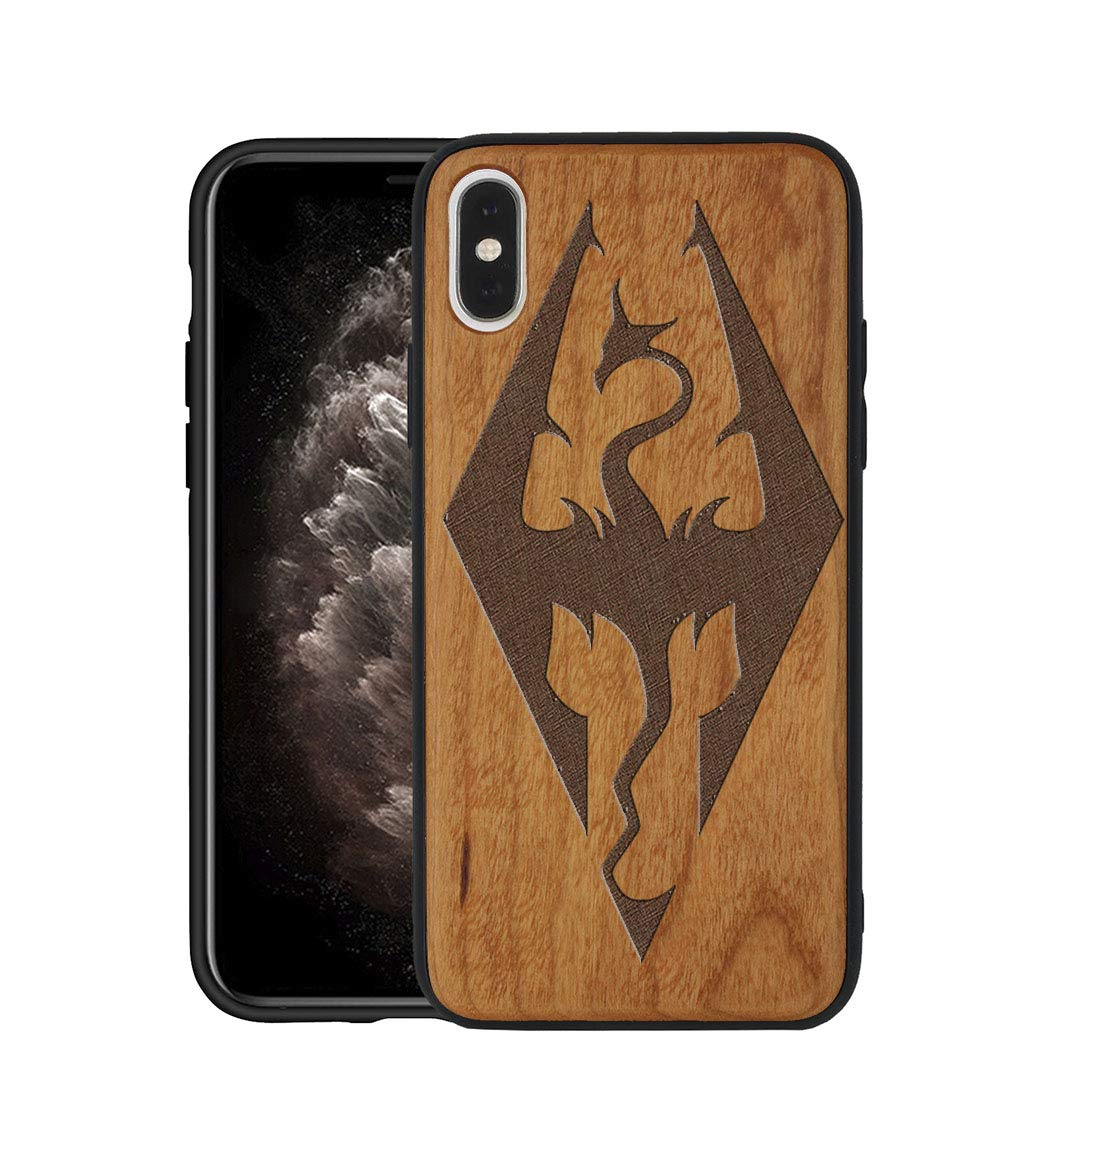 Customized Skyrim Logo Wood iPhone X Case Real Wood Engraving Soft Rubber Protective For iPhone X Case